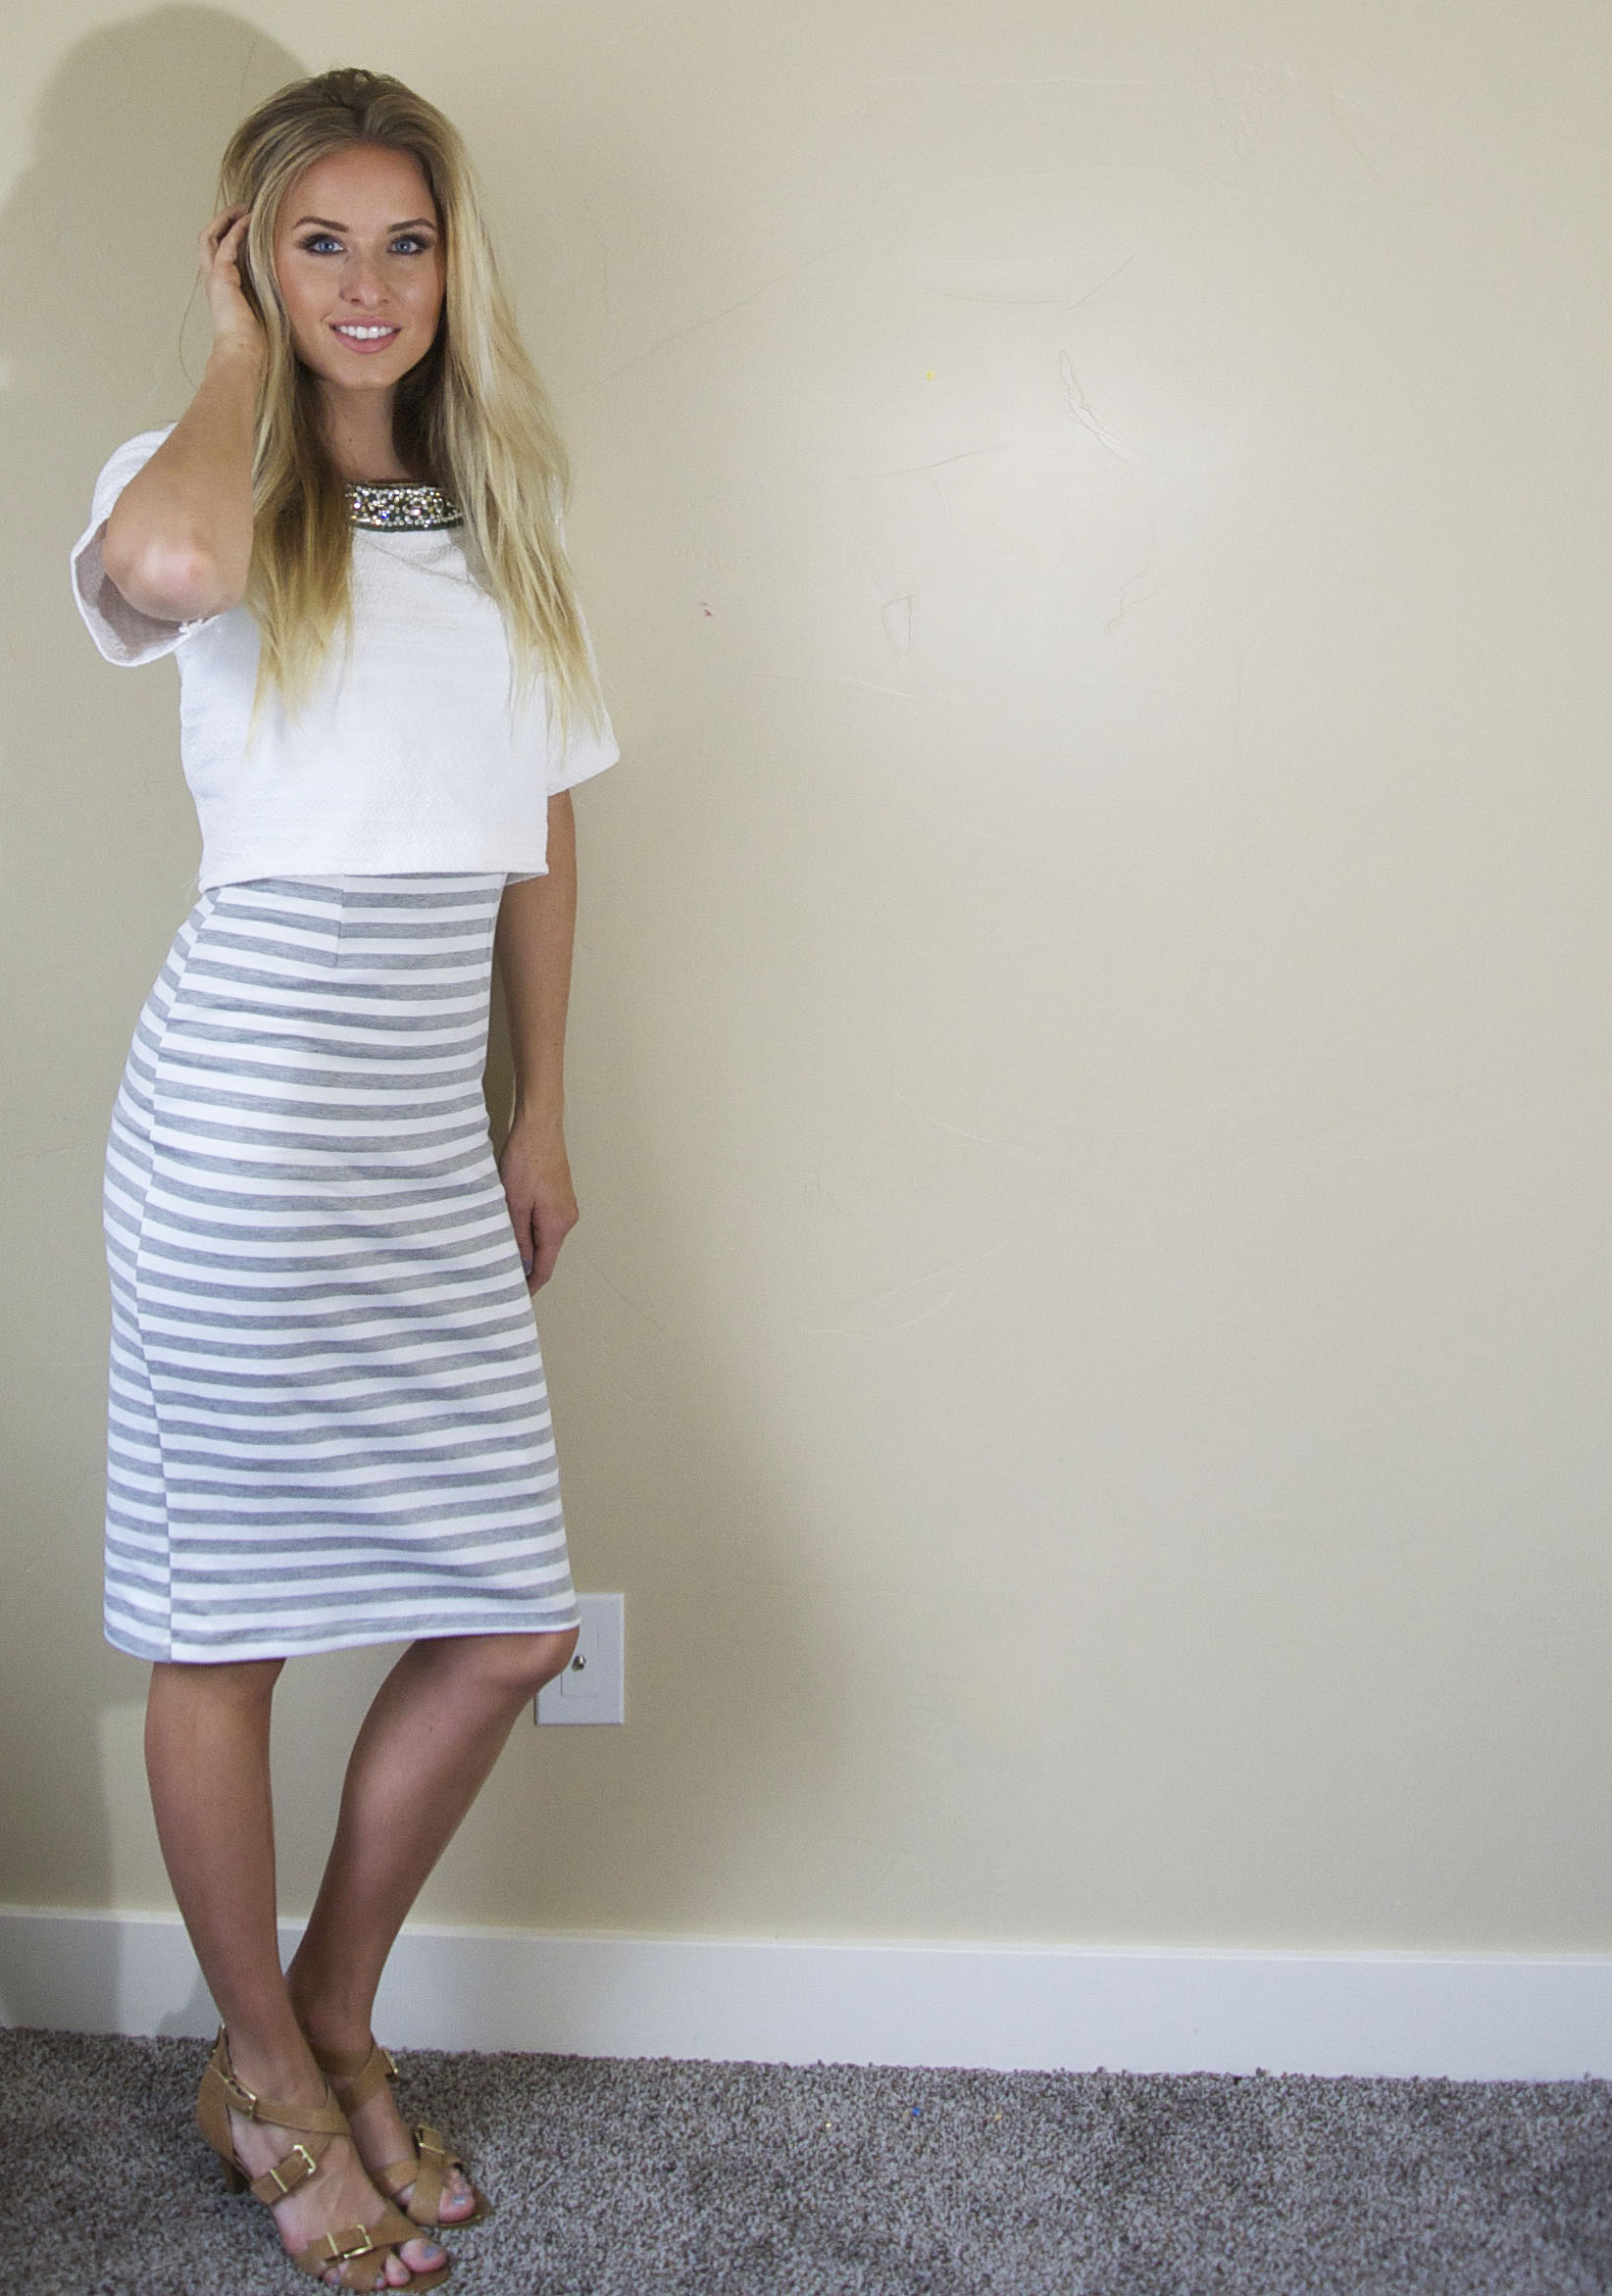 Throw a cropped top over a dress.  Get the same look without having to worry about your midriff showing.